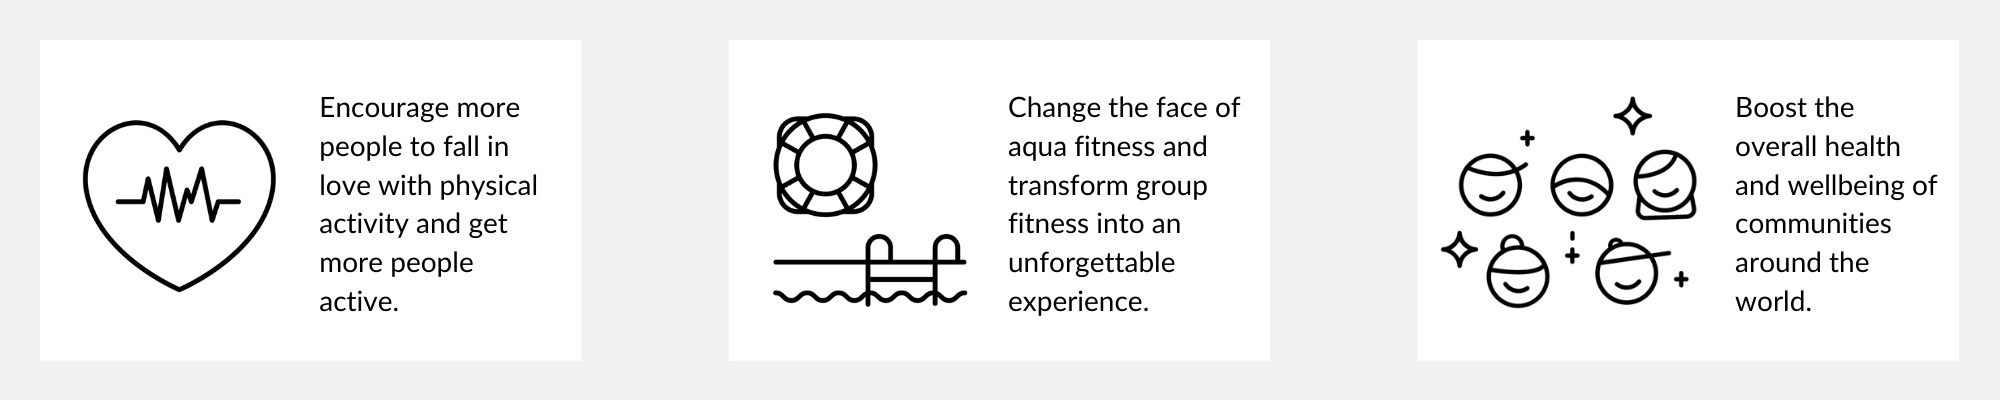 Salti is here to encourage more people to get active, to boost social wellbeing and health in communities and change the face of aqua fitness